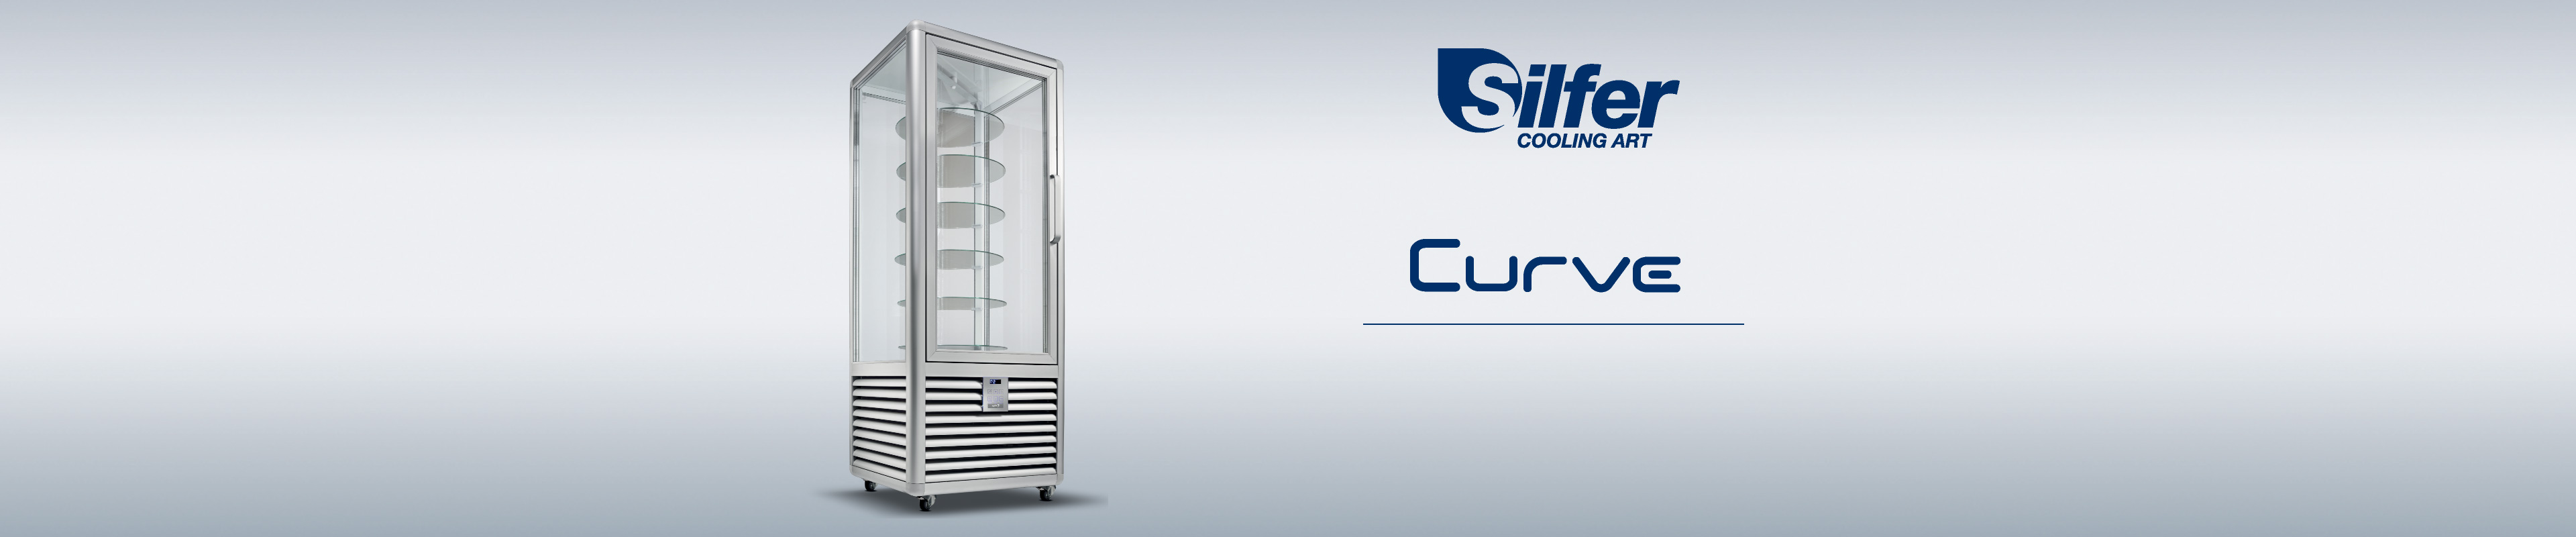 5-silfer-cooking-curve